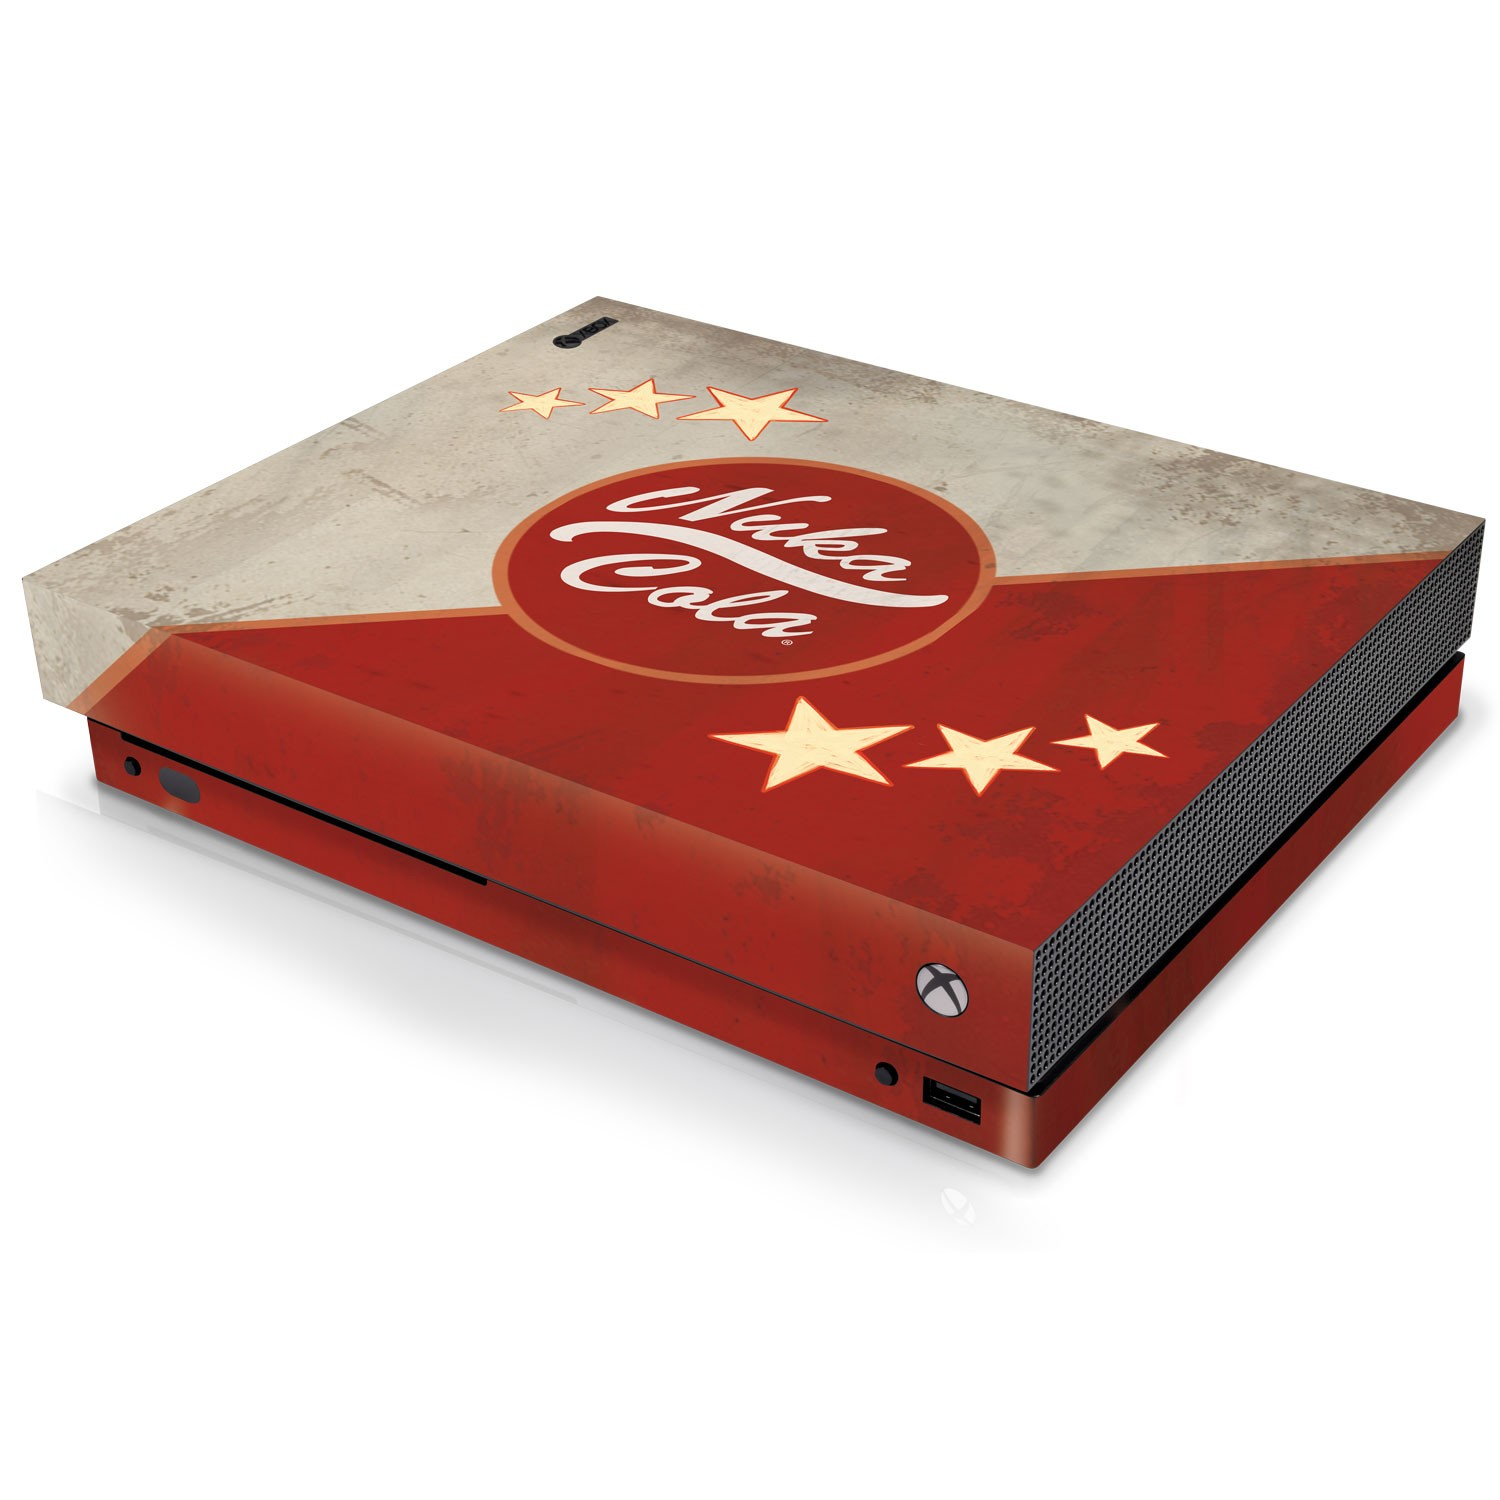 Officially Licensed Console Skin Bundle for Xbox One X - Fallout - Nuka Cola